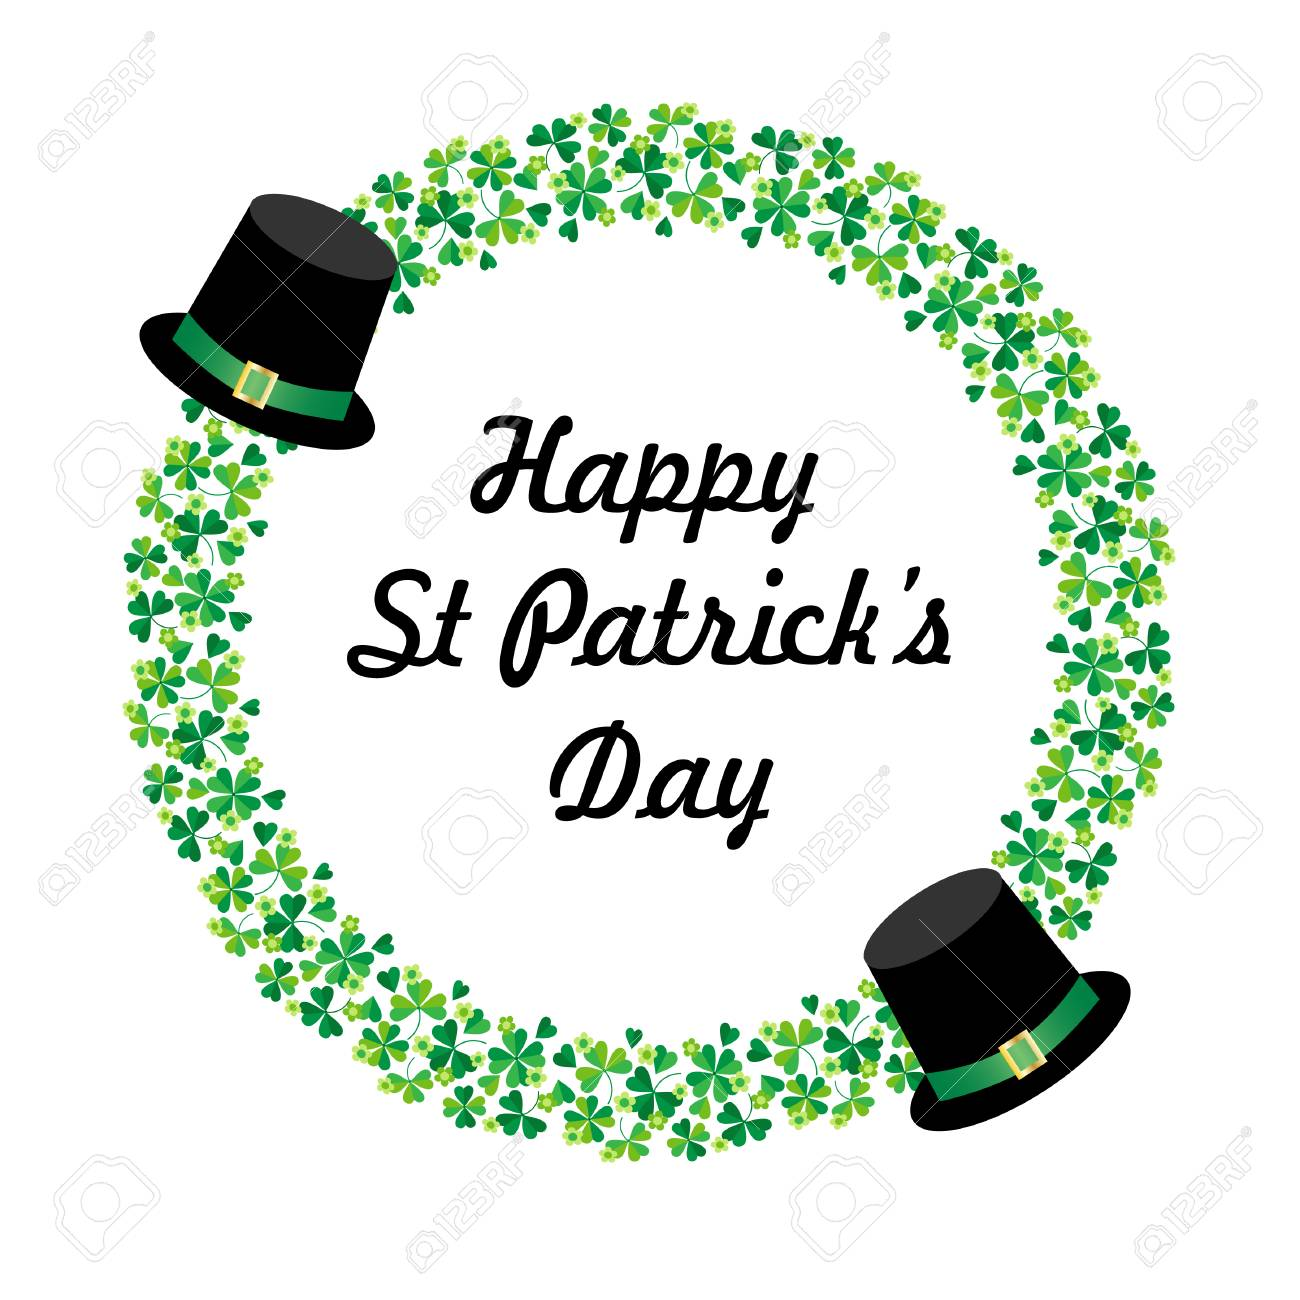 Happy Saint Patricks day graphic with hats and circle shamrock frame - 95992603